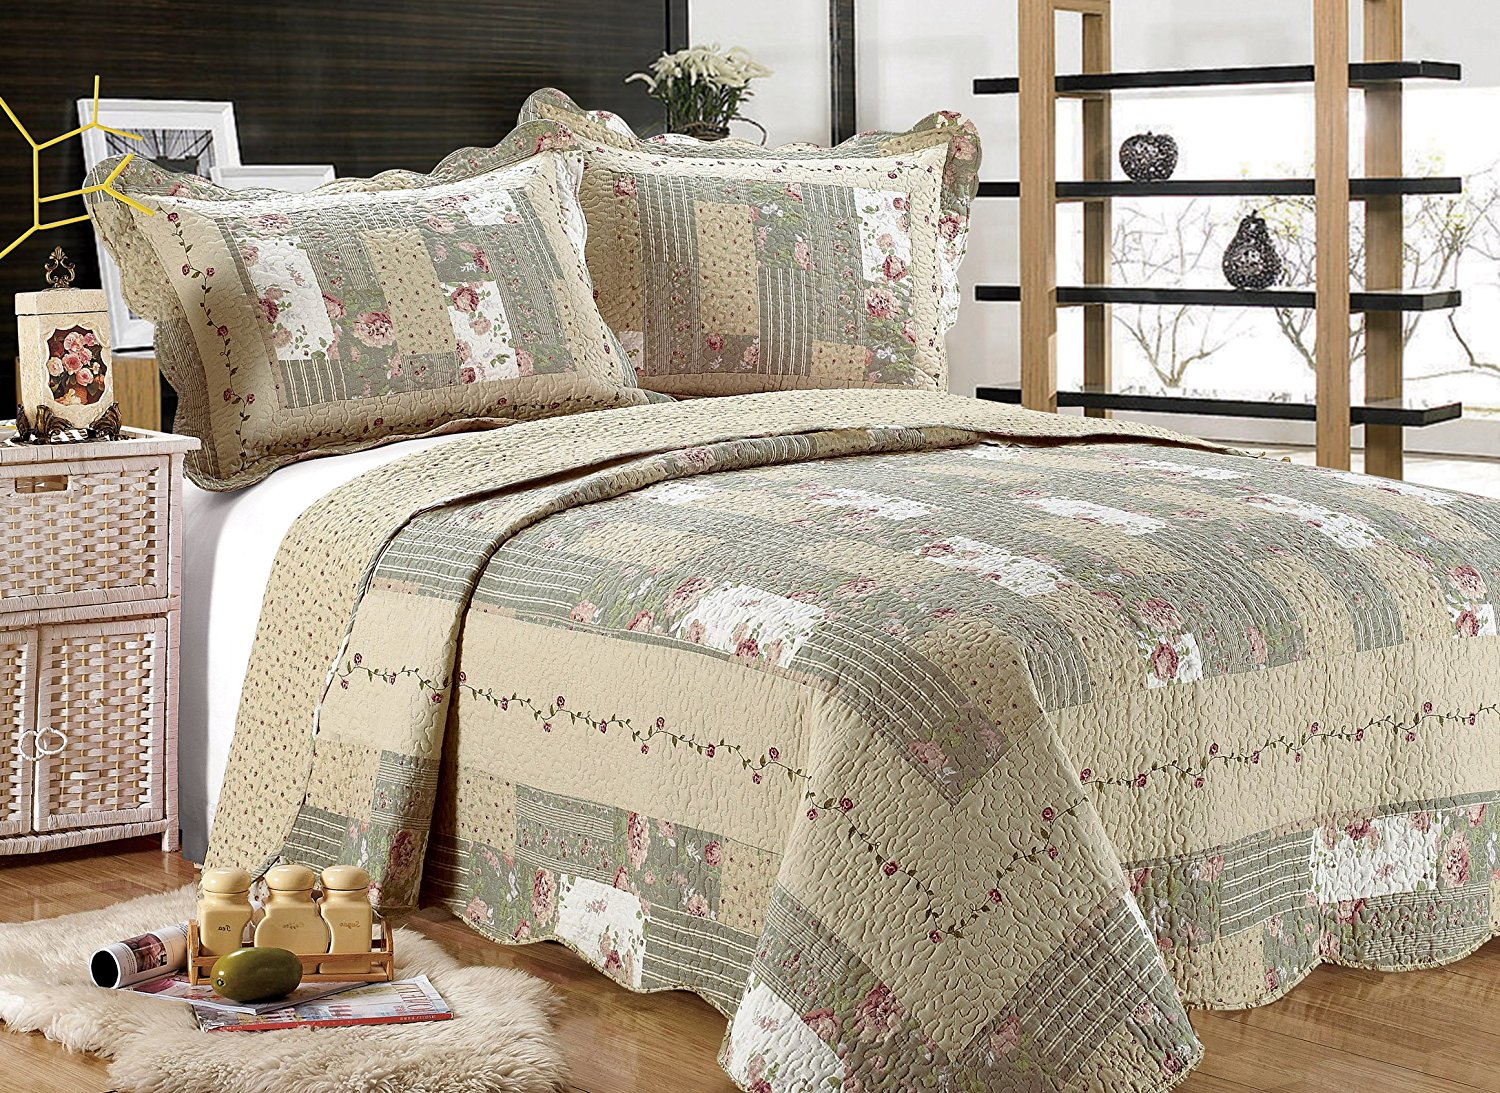 All for You 3pc Reversible Quilt Set, Bedspread, and Coverlet with Patchwork Prints-5... by All For You Home